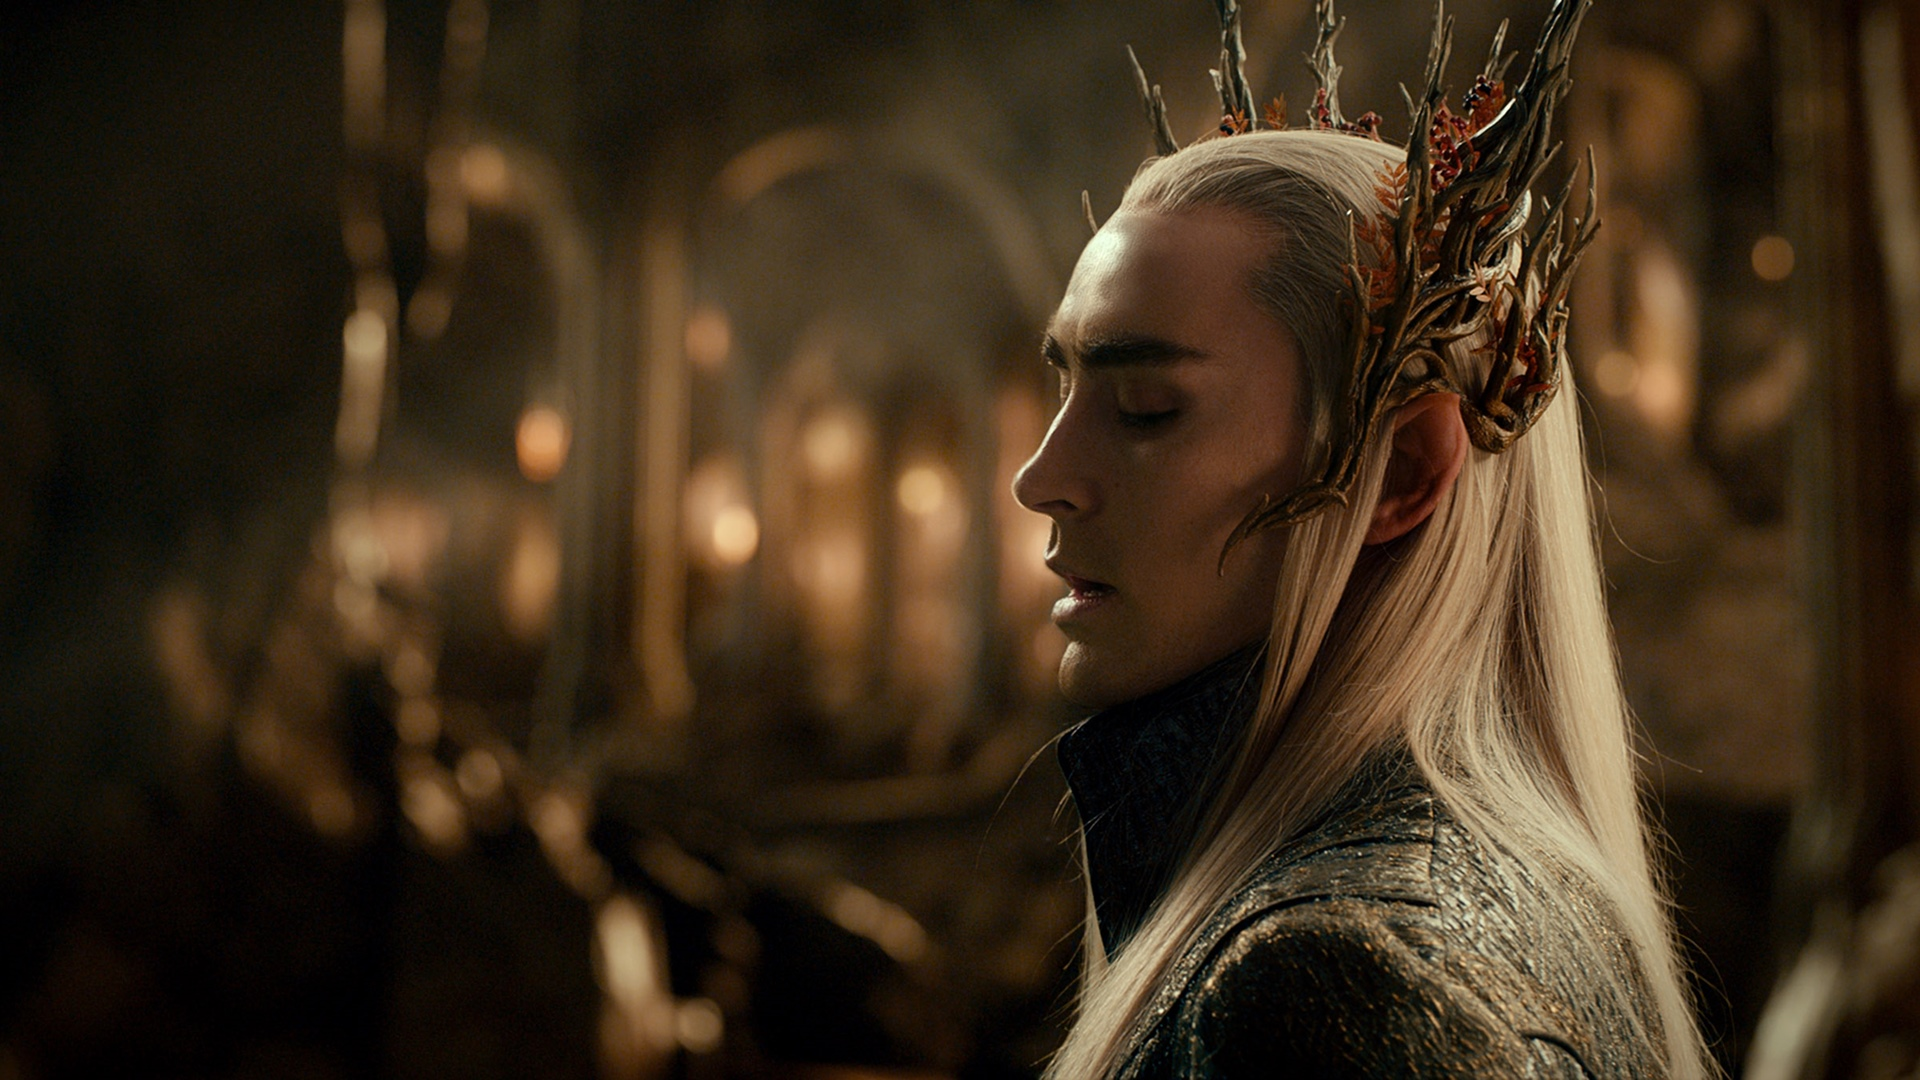 the hobbit movie wallpapers - photo #38